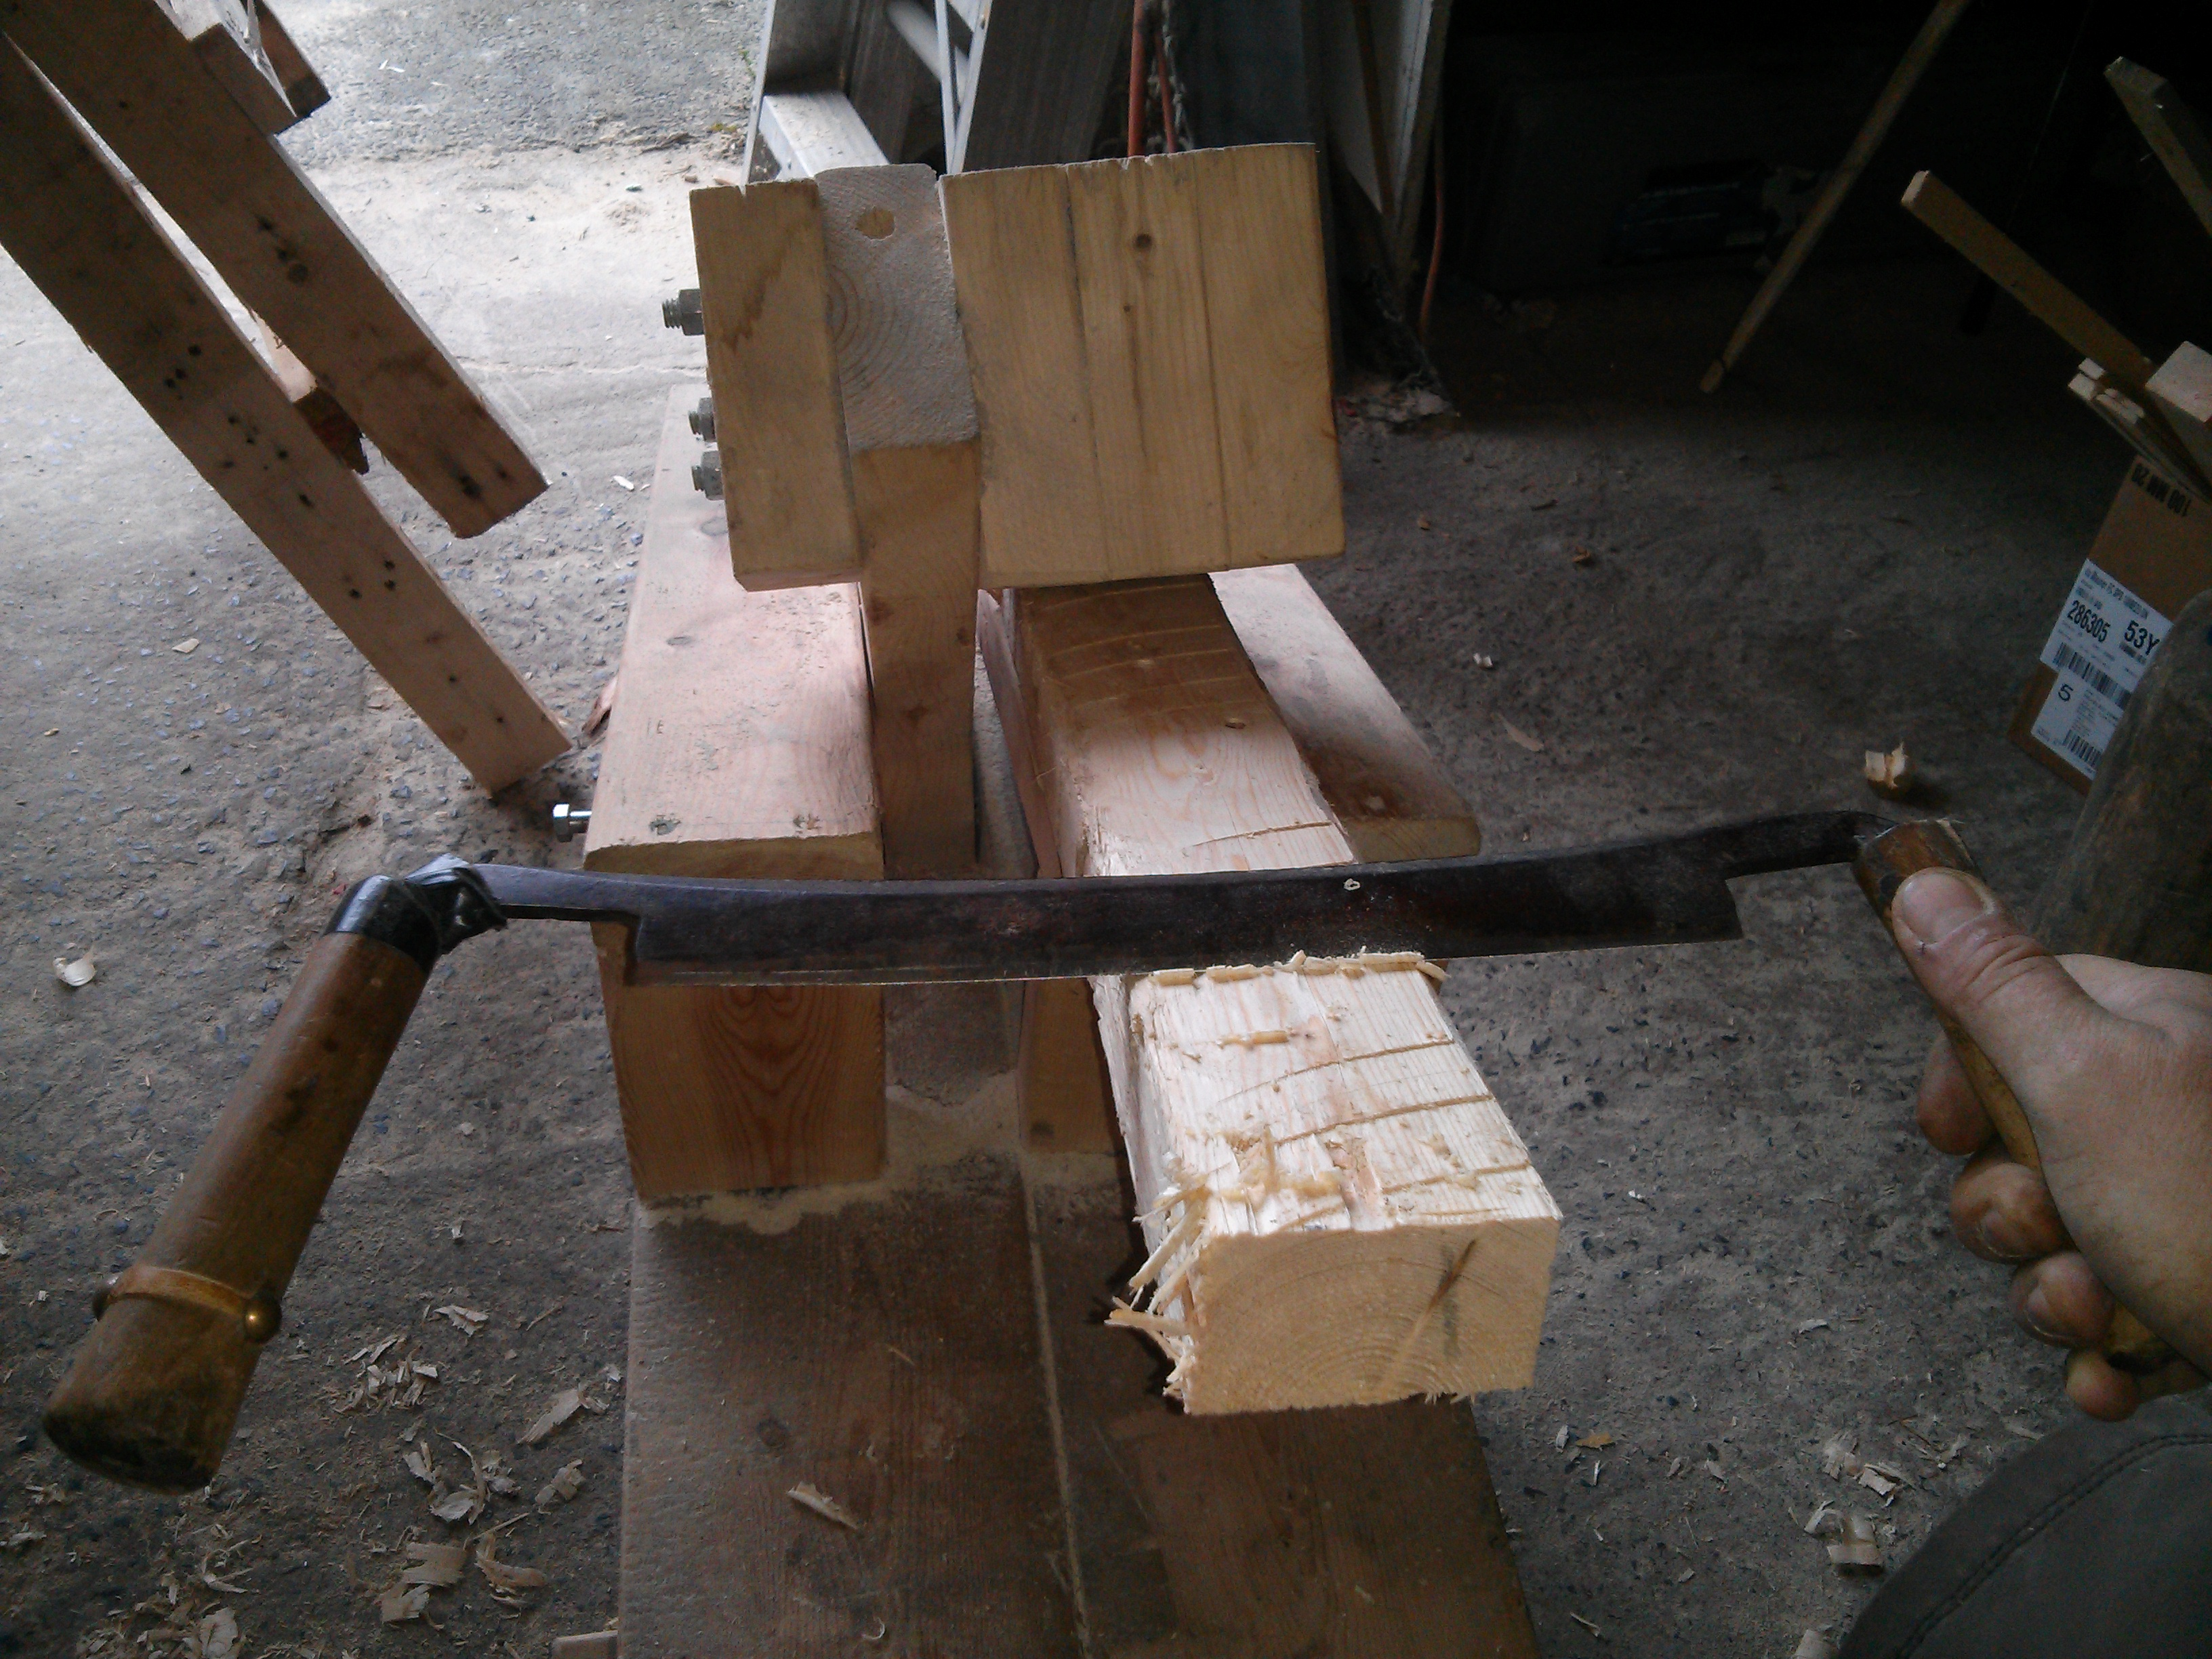 Picture of The Tool Rest Support